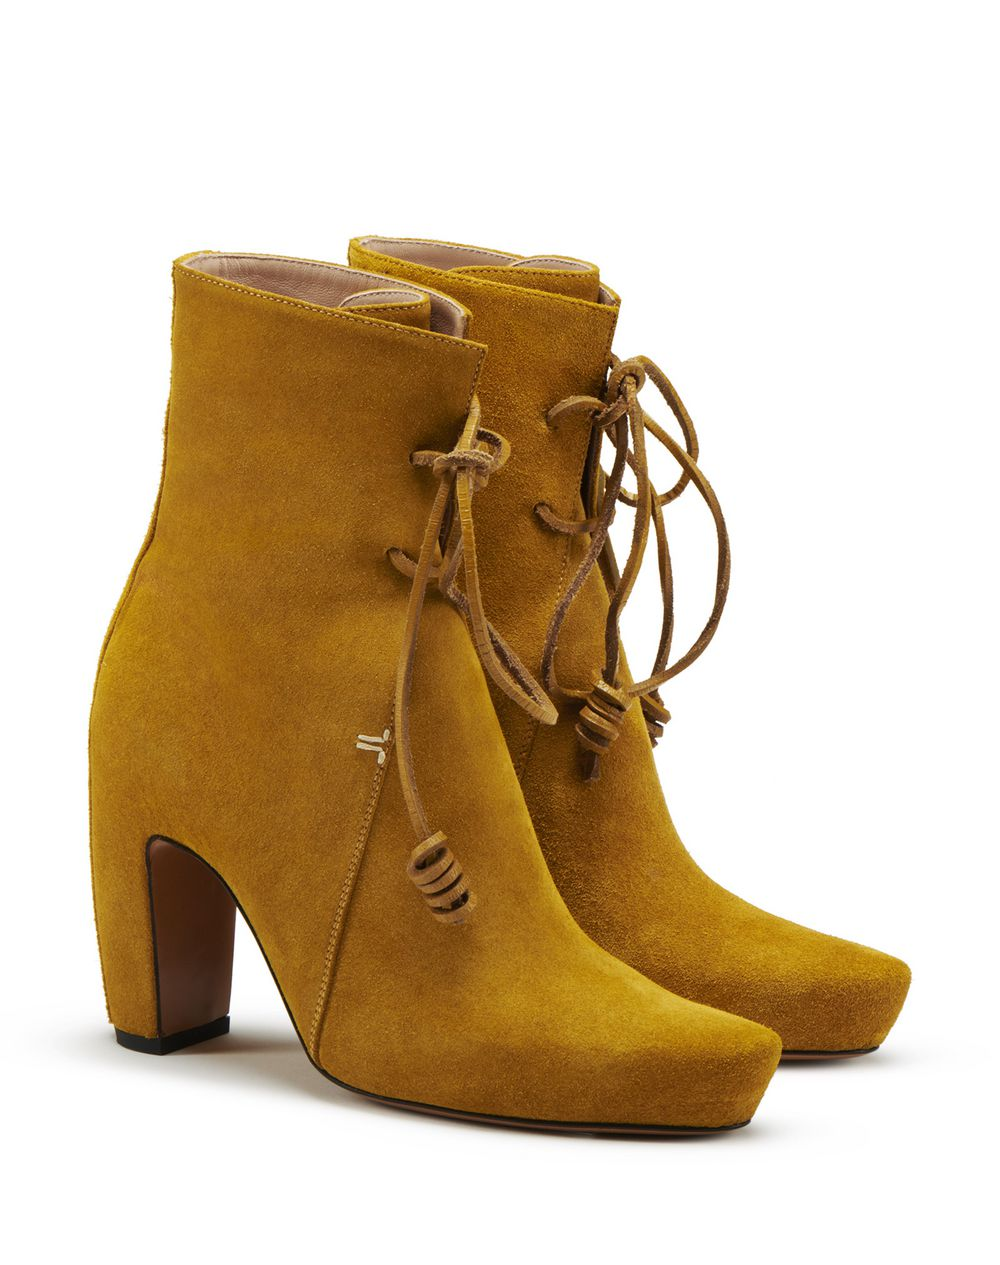 LACE-UP ANKLE BOOTS  - Lanvin